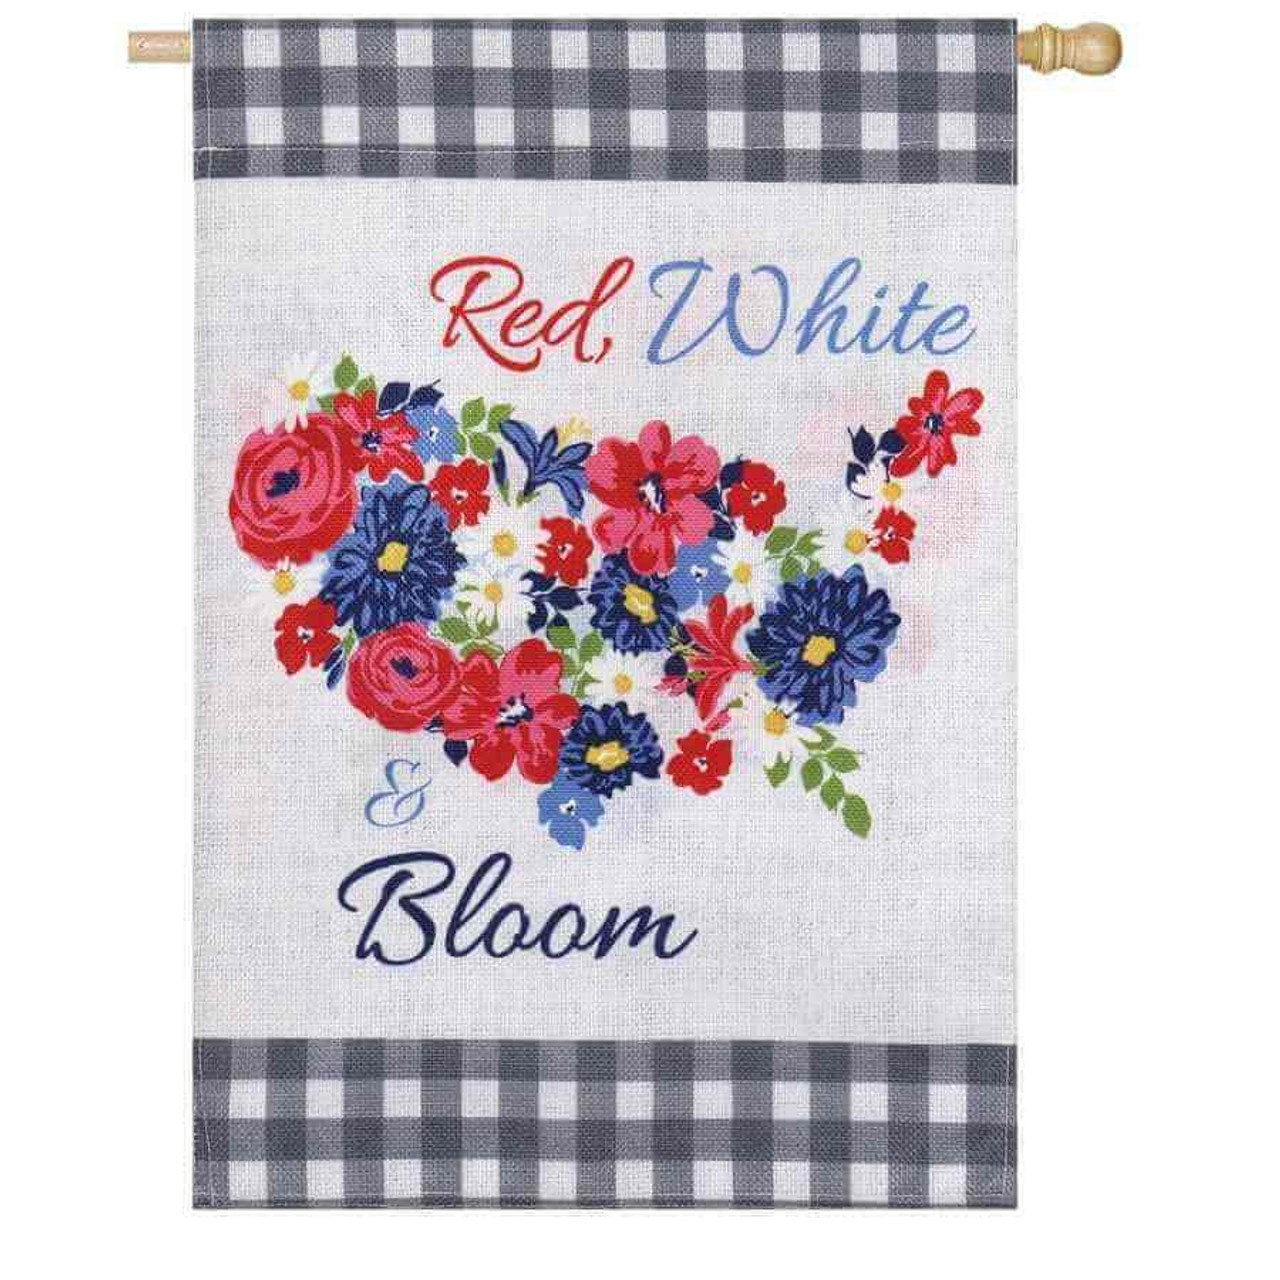 Border on top and bottom with black and white checkered design and an image of red, white & blue flowers shaped like the United States.